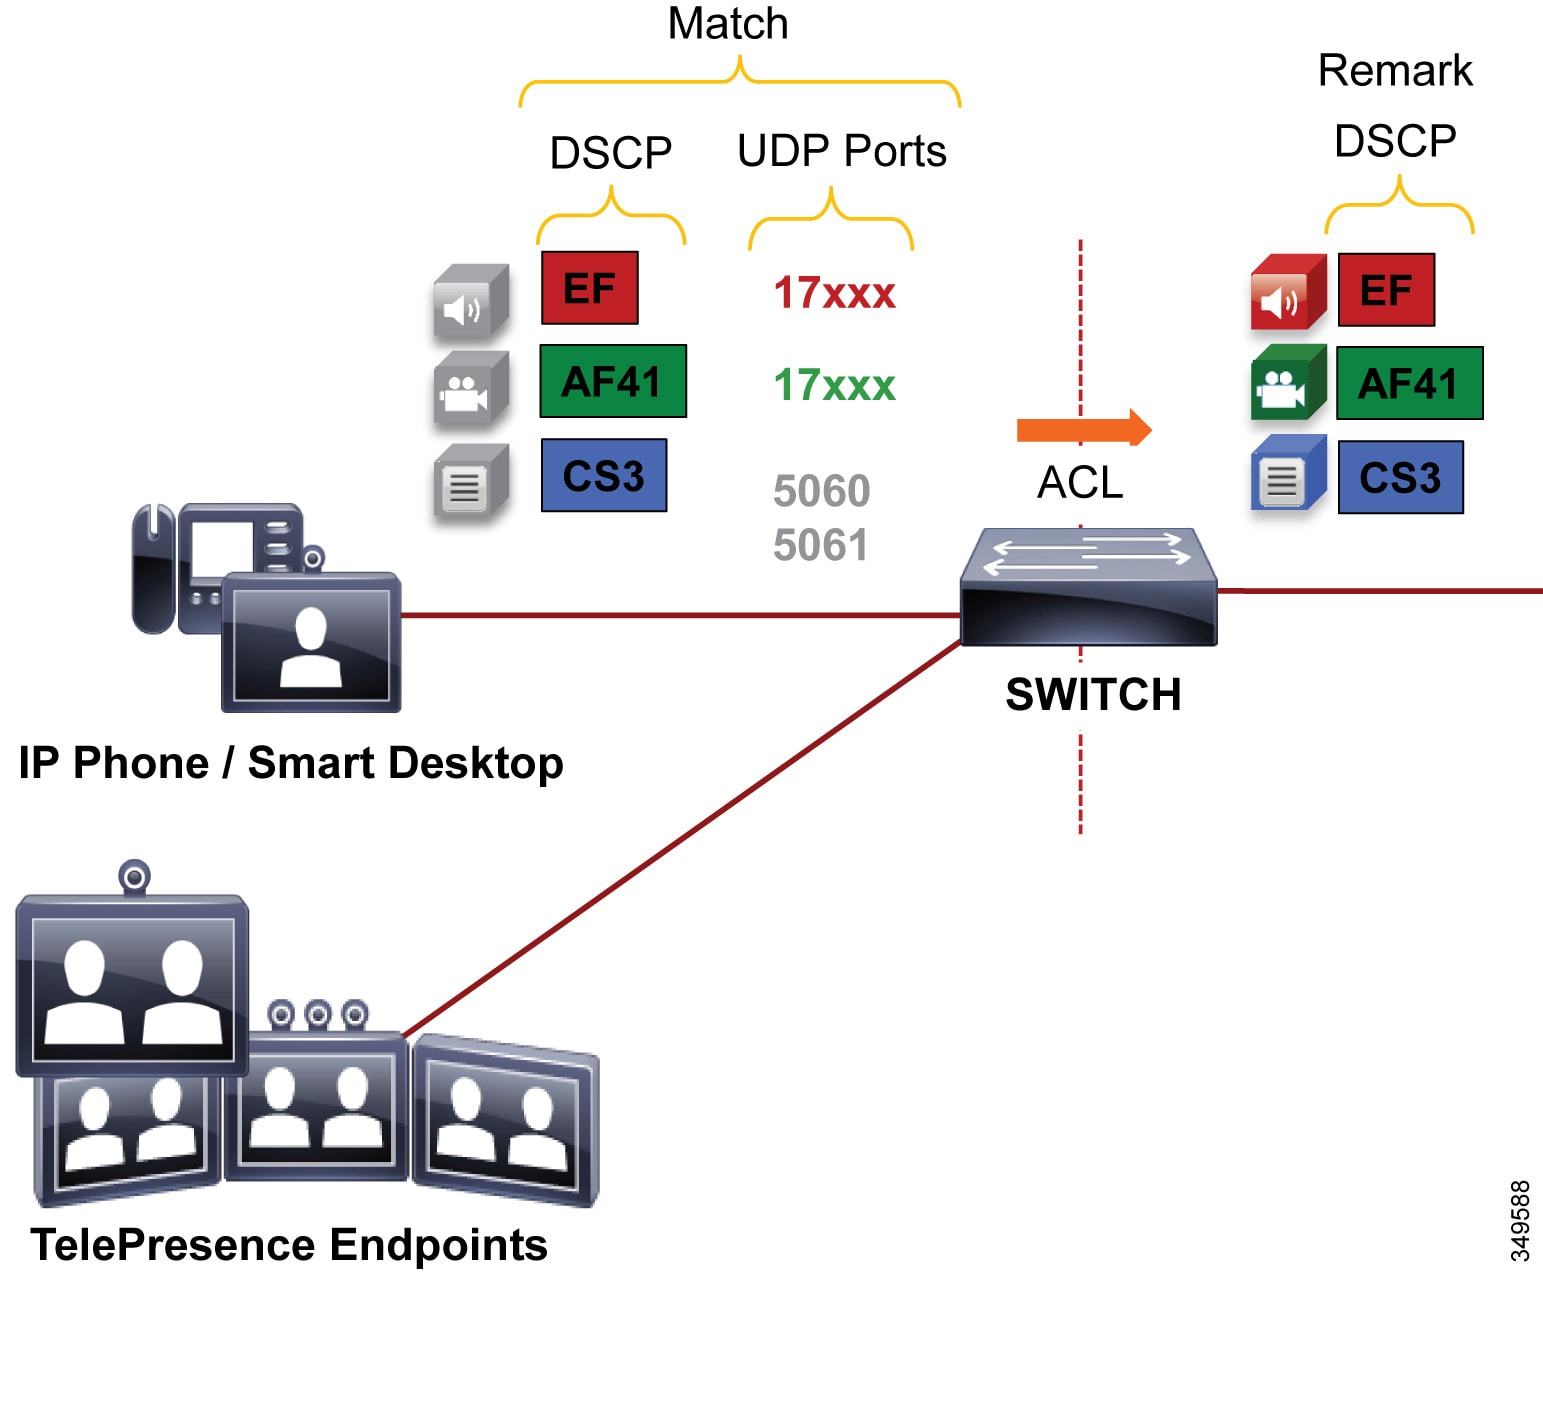 Cisco Preferred Architecture For Enterprise Collaboration 116 Cvd Here Are The Diagrams Intermediate Switches Marked With L1 L2 Administrator Creates An Acl Access Switch Ports To Re Mark Udp Following Dscp Values